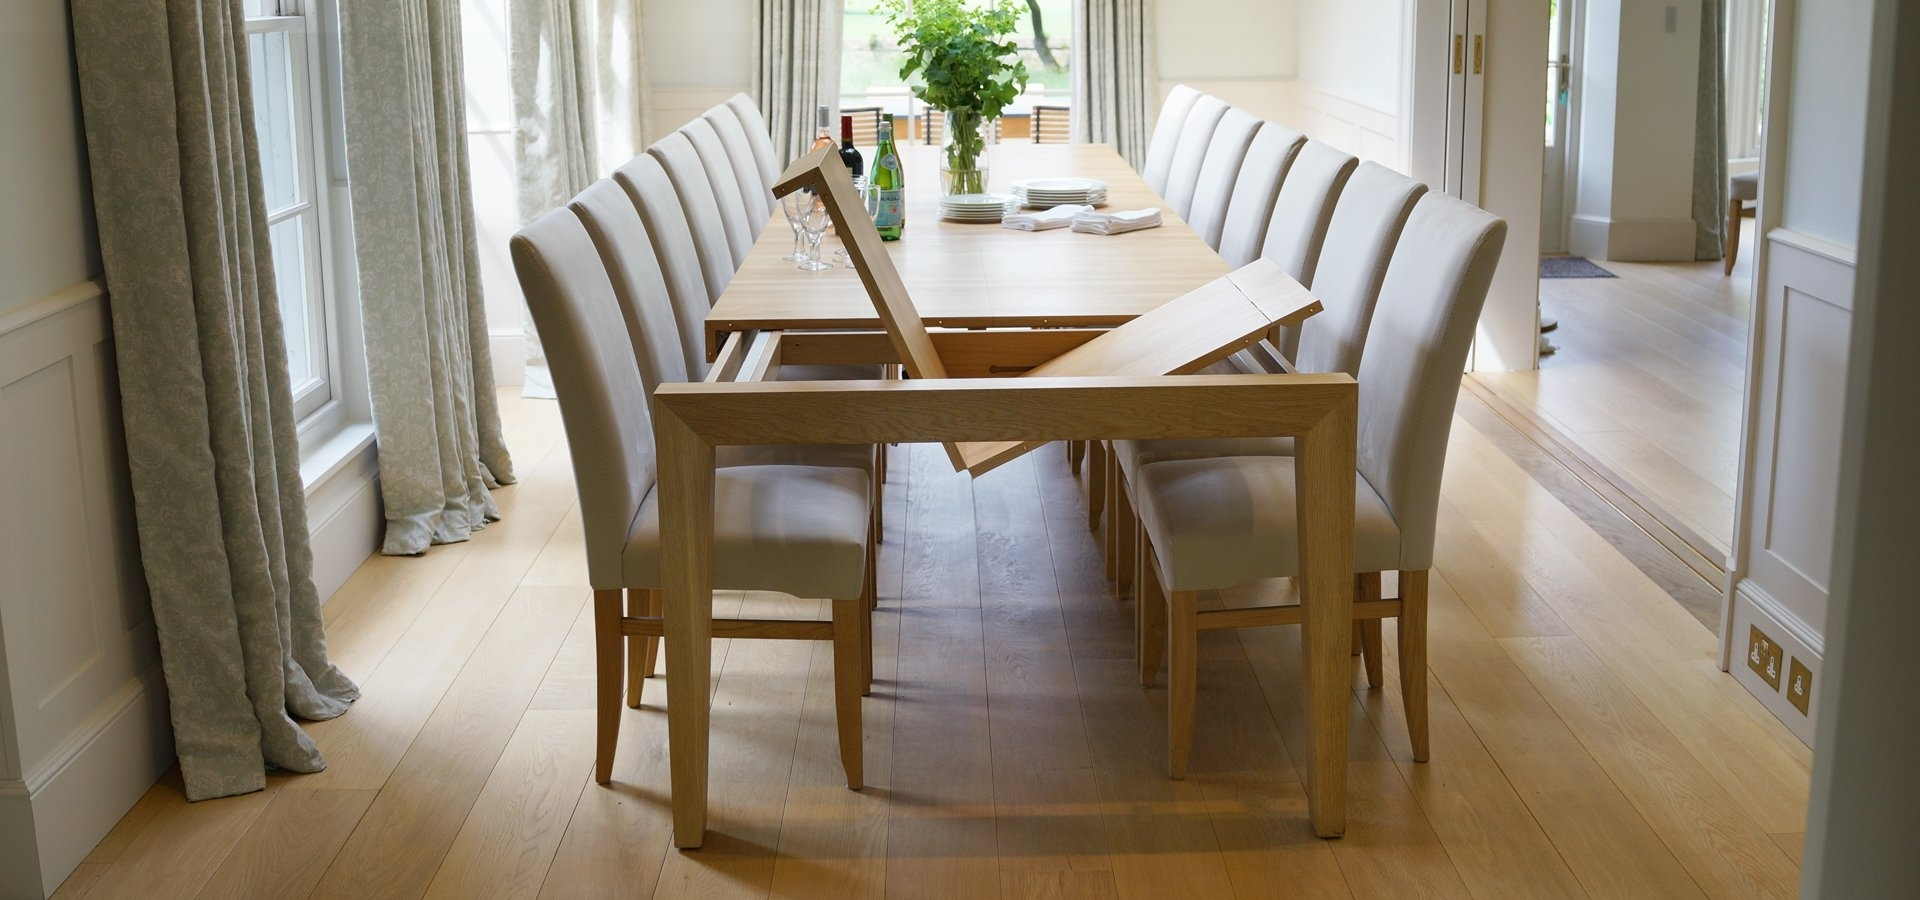 Oak Extending Dining Tables And Chairs Throughout Famous Contemporary Dining Tables & Furnitureberrydesign (View 15 of 25)